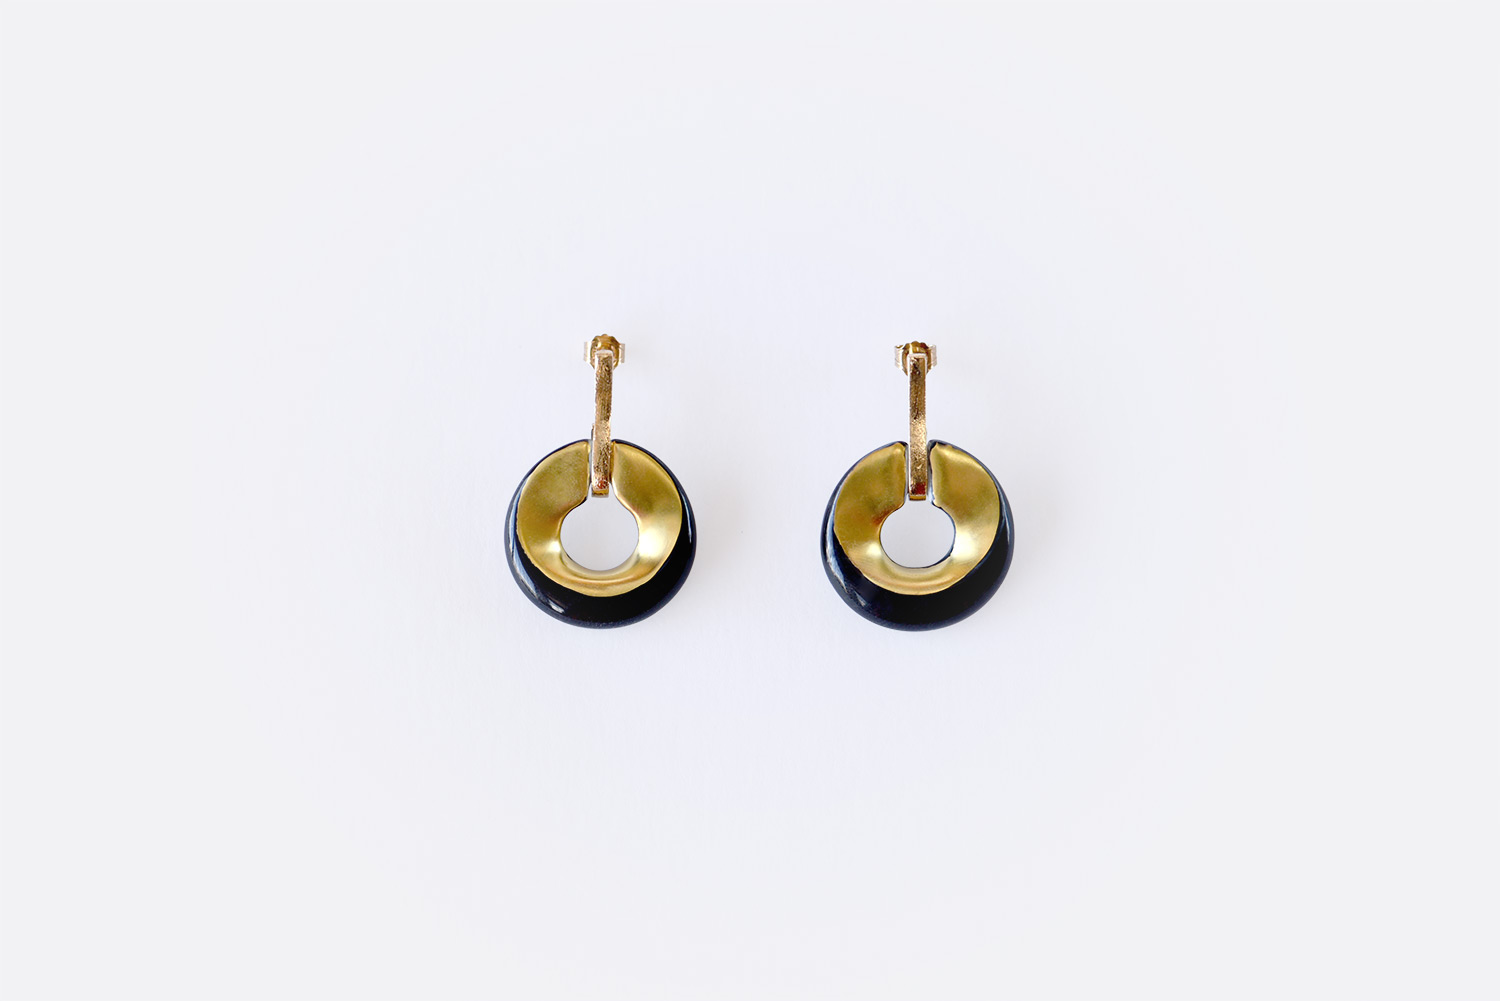 China Earrings of the collection ALBA NOIR ET OR | Bernardaud